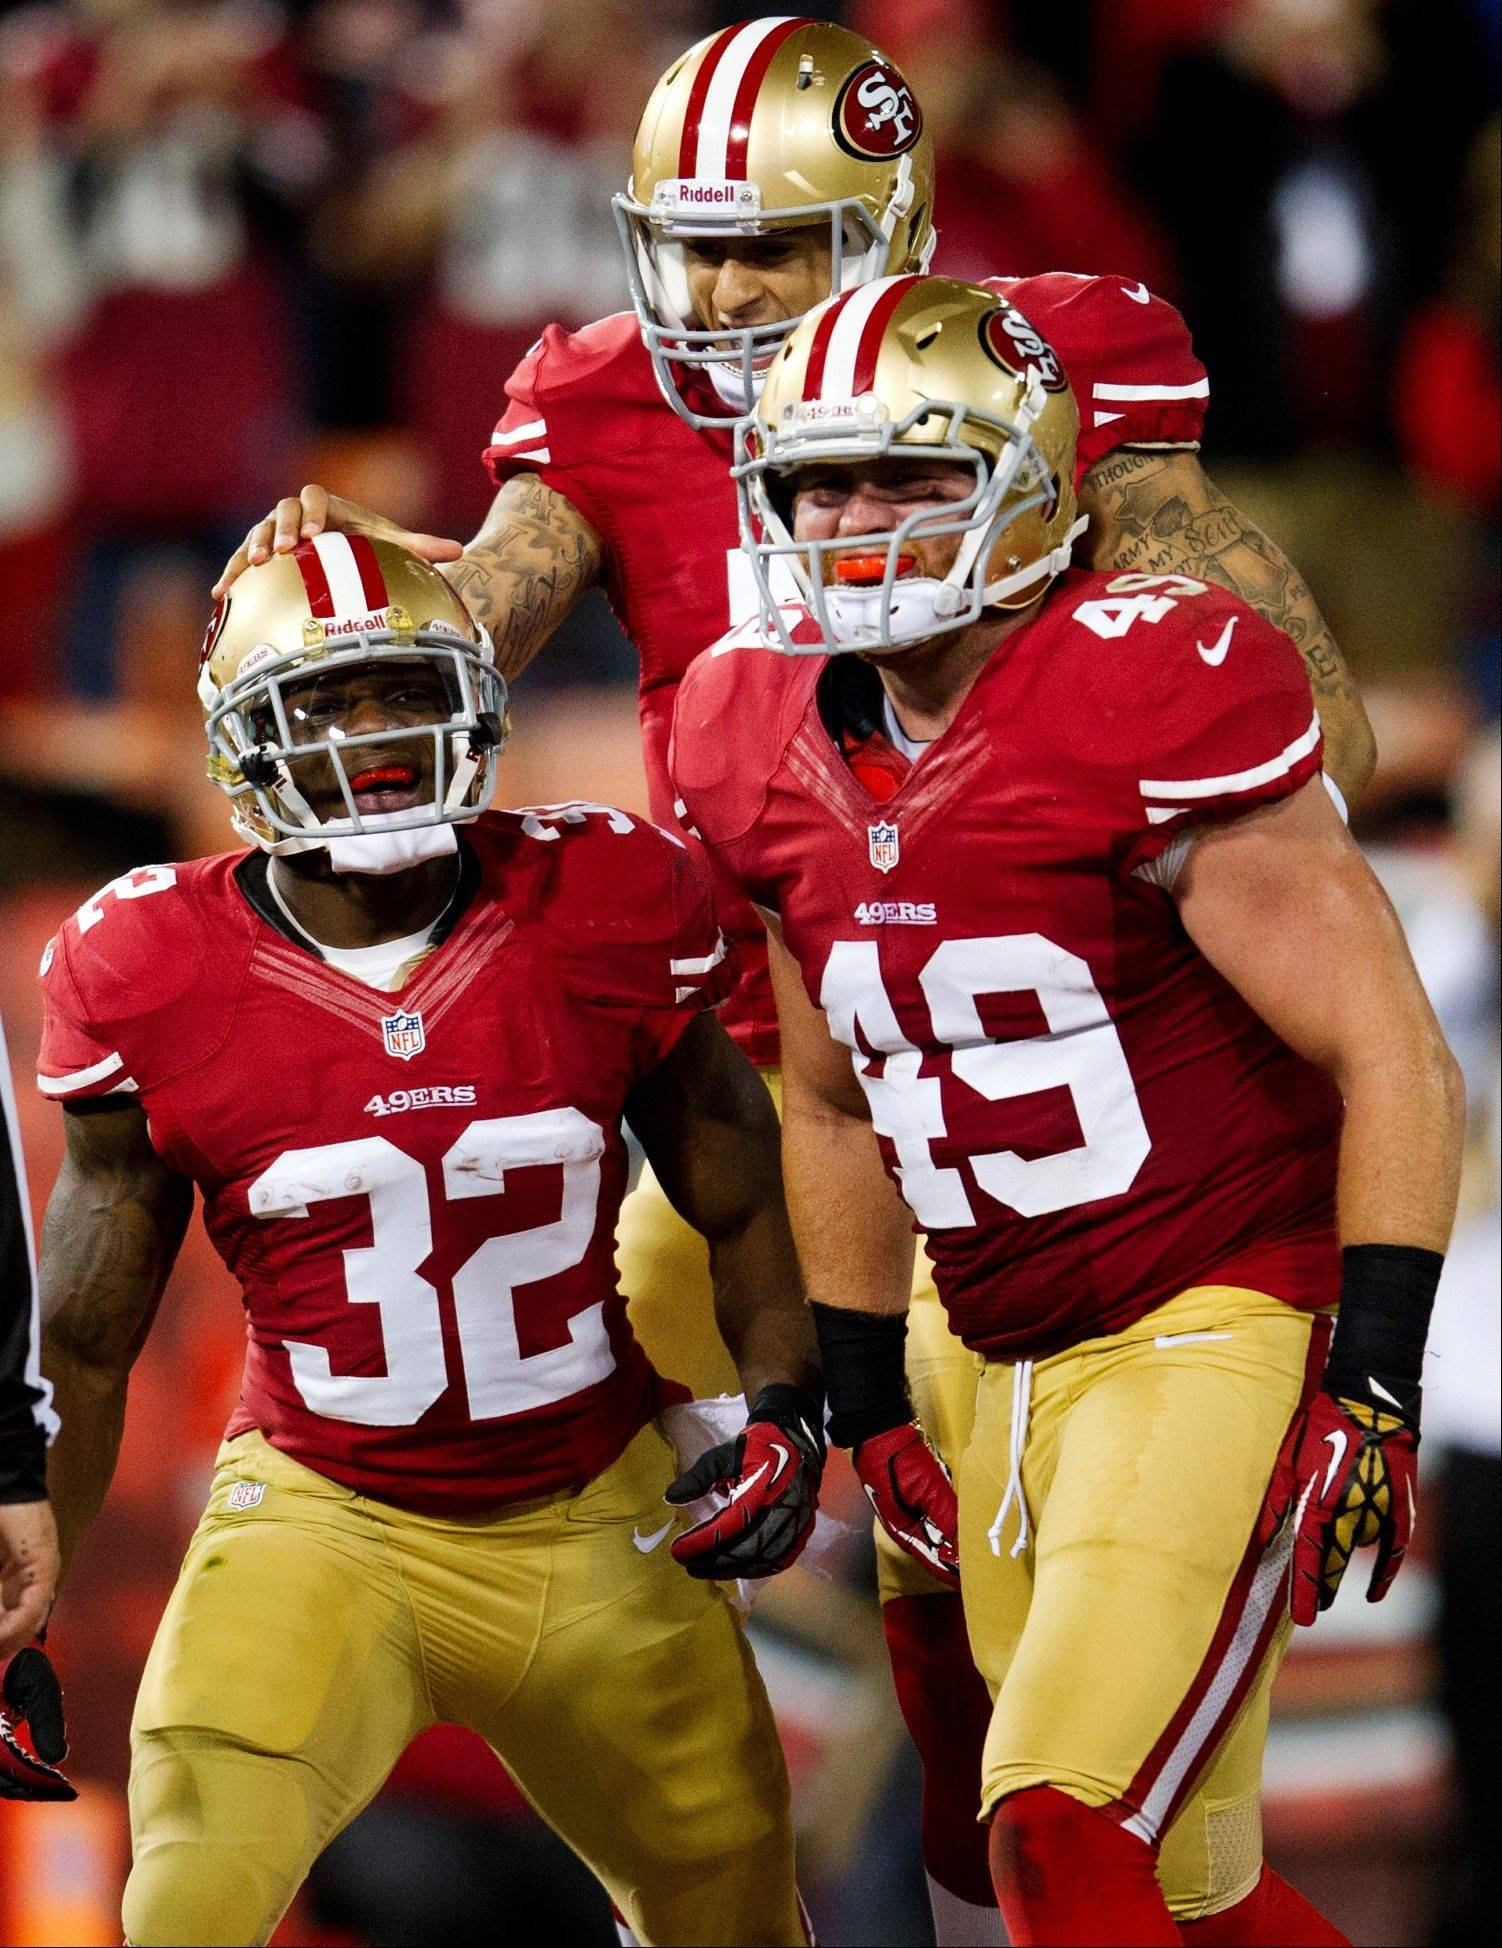 San Francisco 49ers running back Kendall Hunter celebrates with fullback Bruce Miller and quarterback Colin Kaepernick after his touchdown against the Chicago Bears during the second quarter.